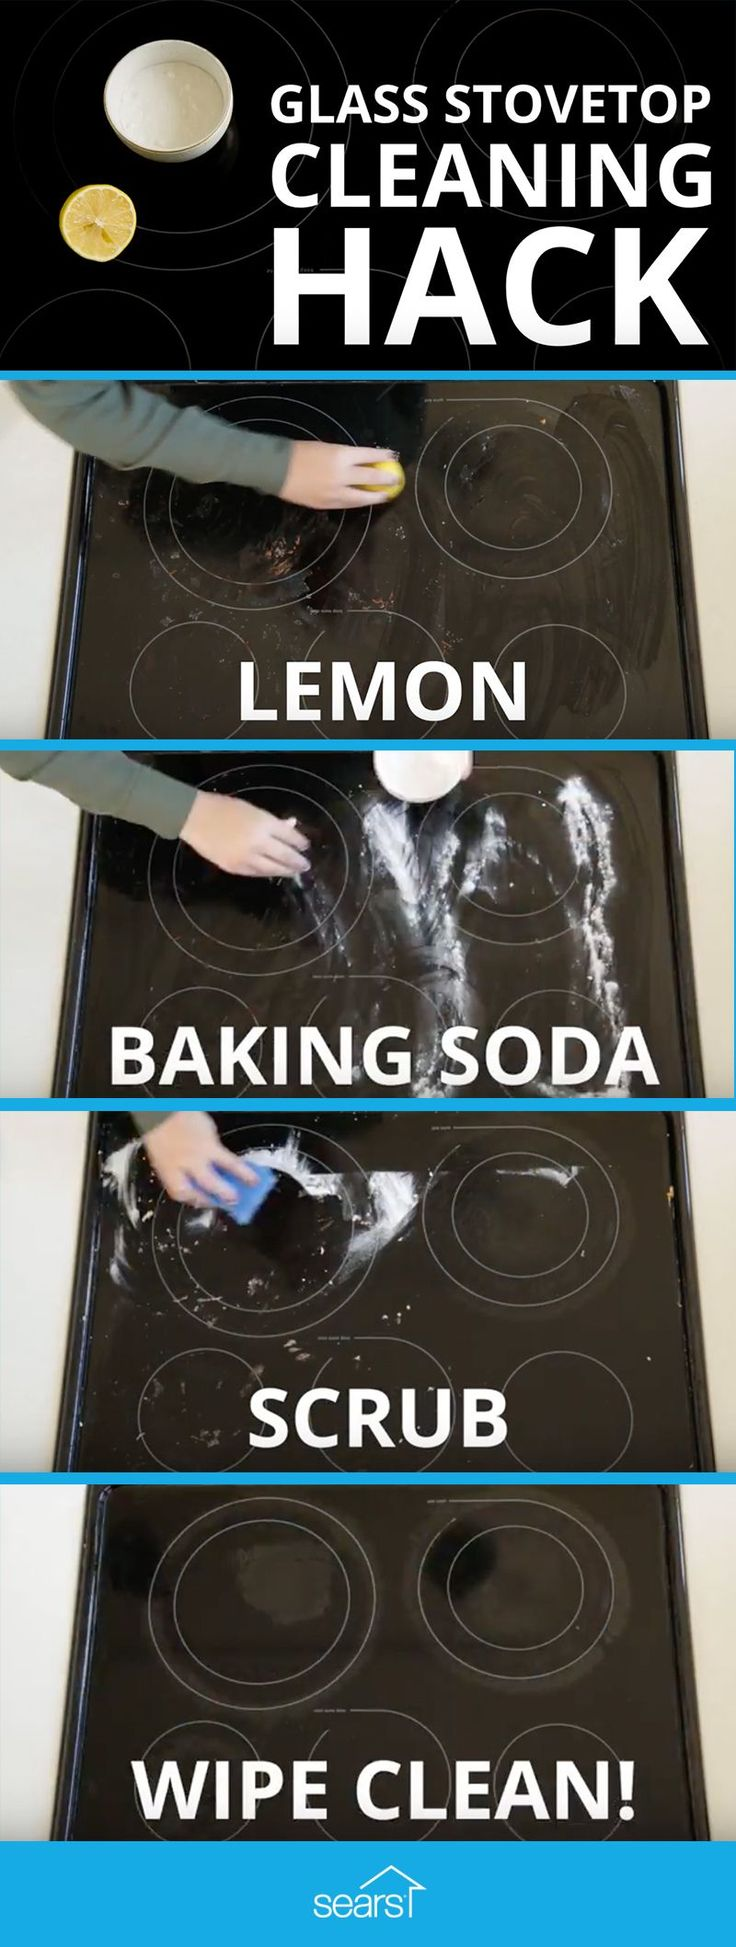 Stovetop Cleaning Hack Tested: clean with lemon and baking soda. This stovetop cleaning hack doesn't even require a cleaner — just lemon juice and baking soda. Baking soda seems to work for pretty much anything, so we're testing it to find out if it makes your stovetop sparkle. Visit the Sears Home Services blog now to watch the video and see if it really works! #homecleaningtips